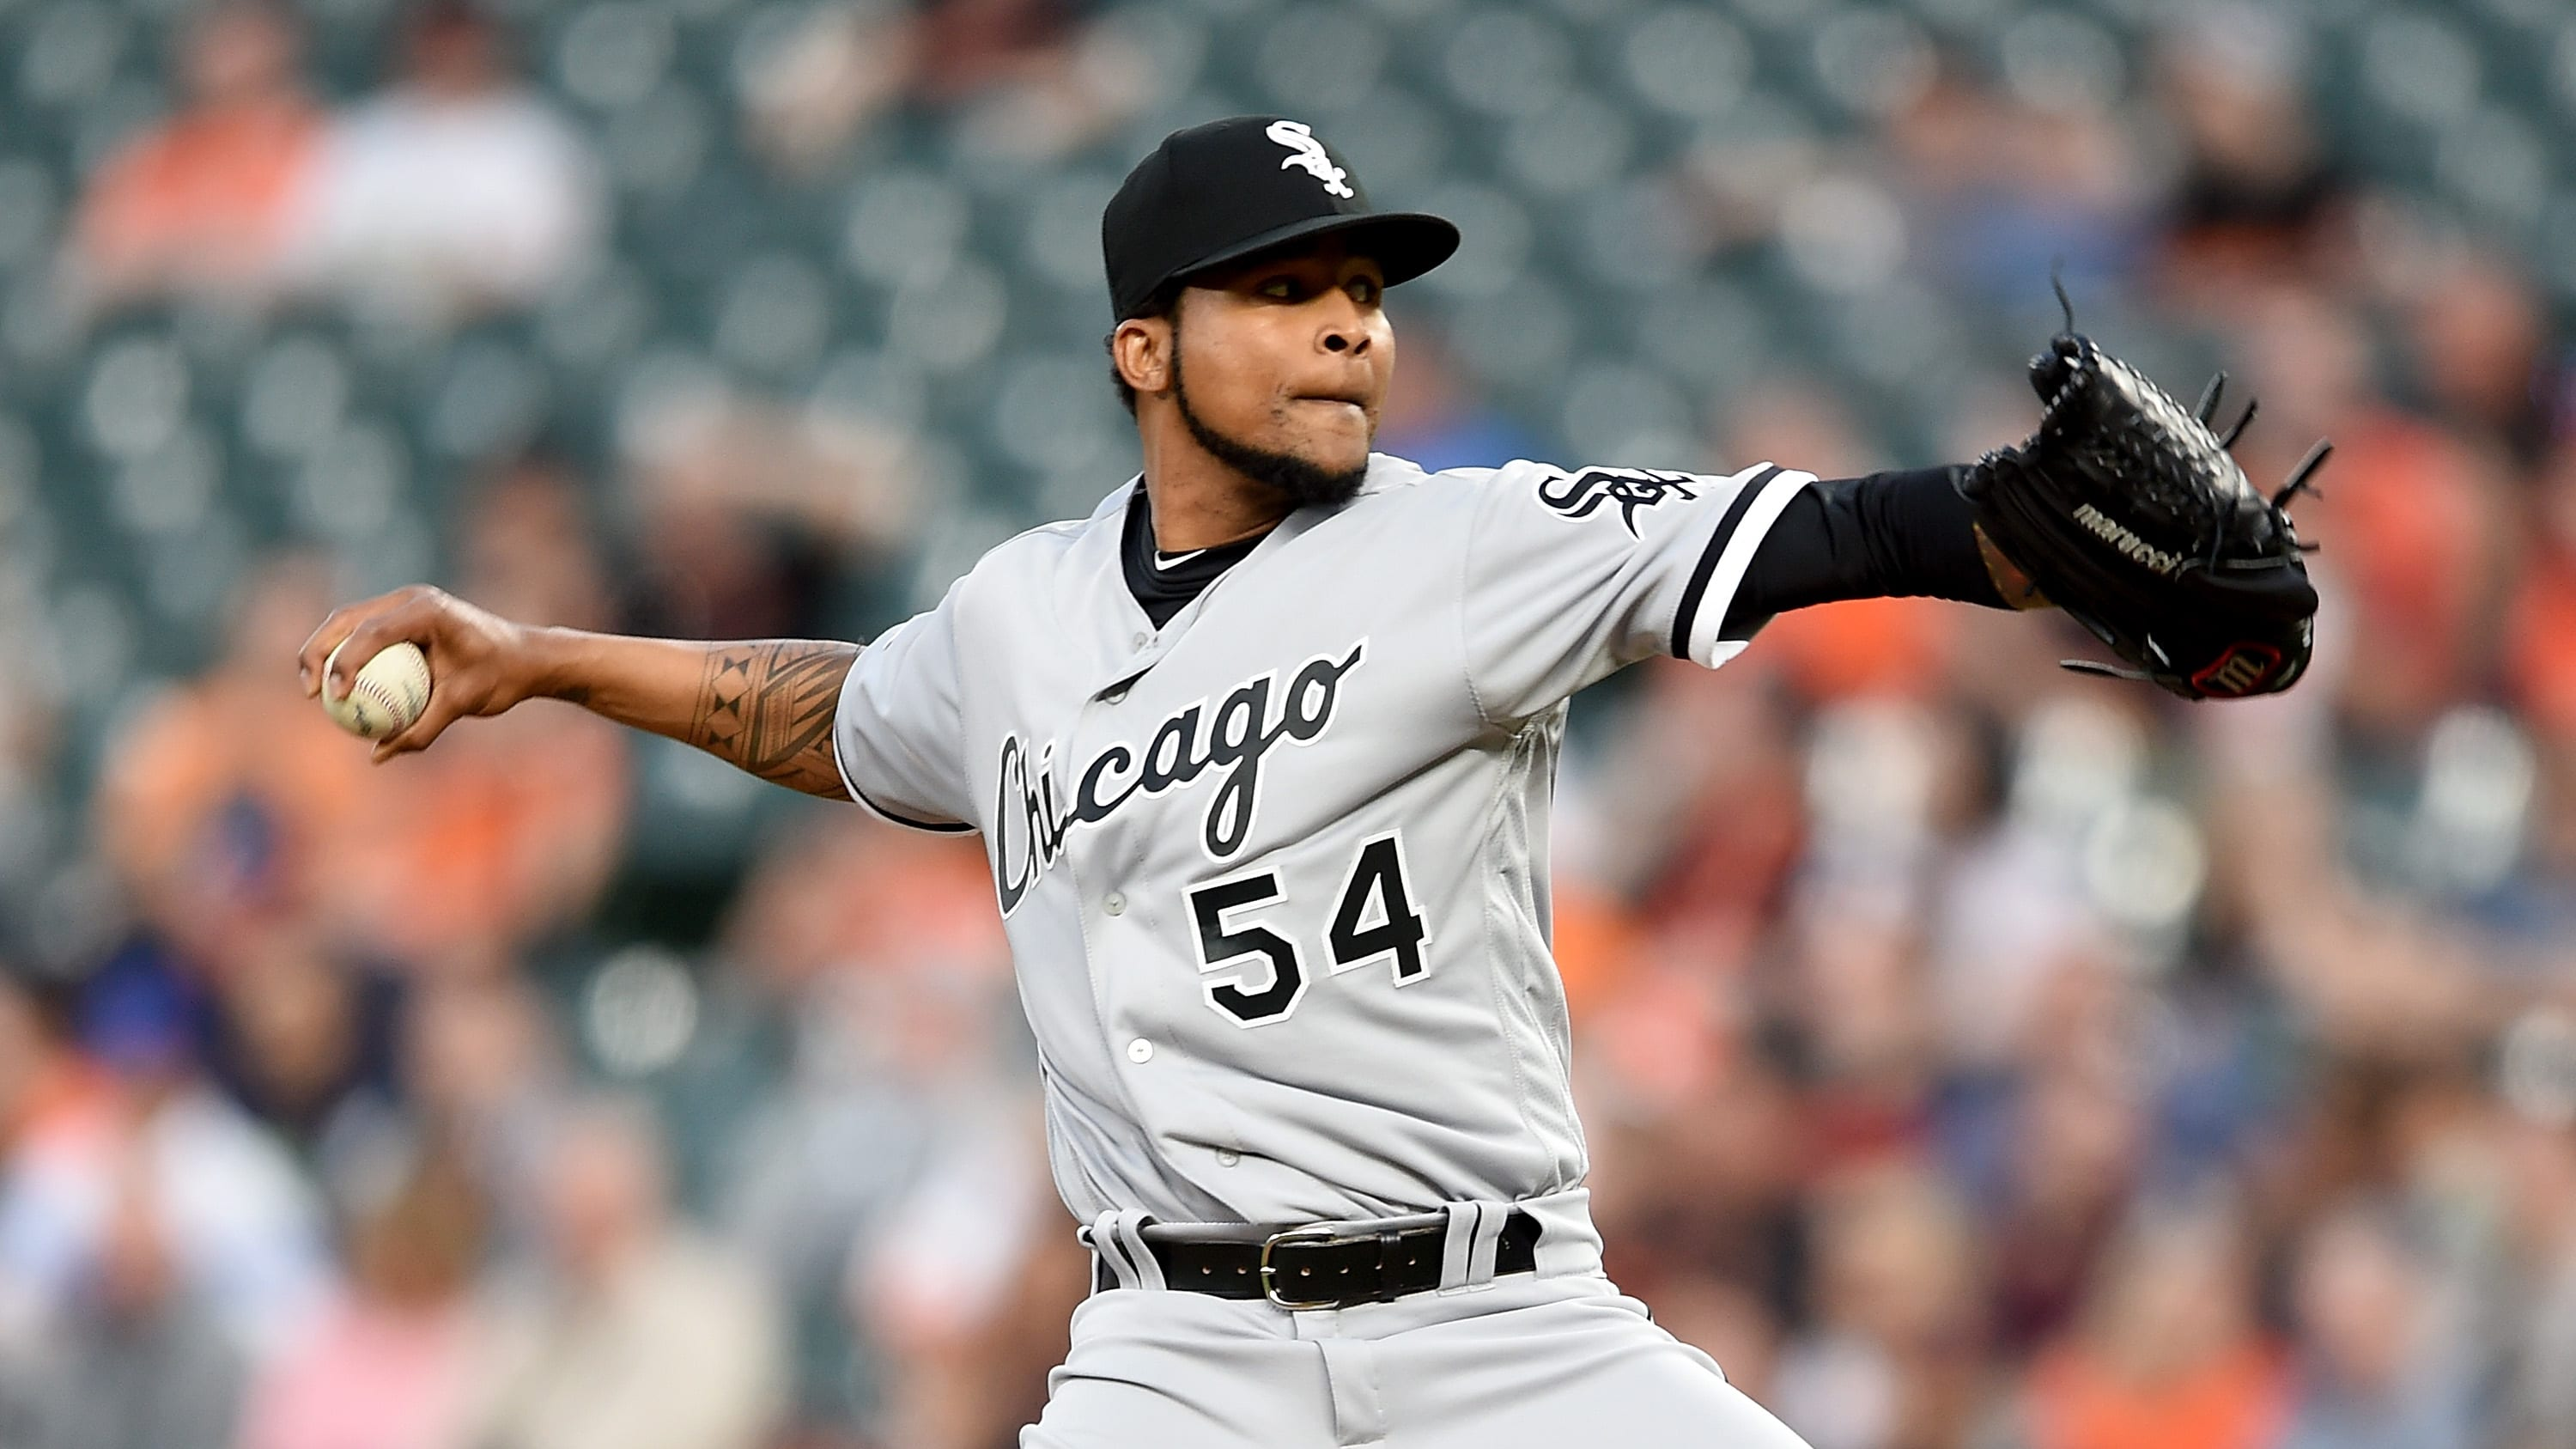 BALTIMORE, MD - APRIL 24:  Ervin Santana #54 of the Chicago White Sox pitches in the first inning against the Baltimore Orioles at Oriole Park at Camden Yards on April 24, 2019 in Baltimore, Maryland.  (Photo by Greg Fiume/Getty Images)